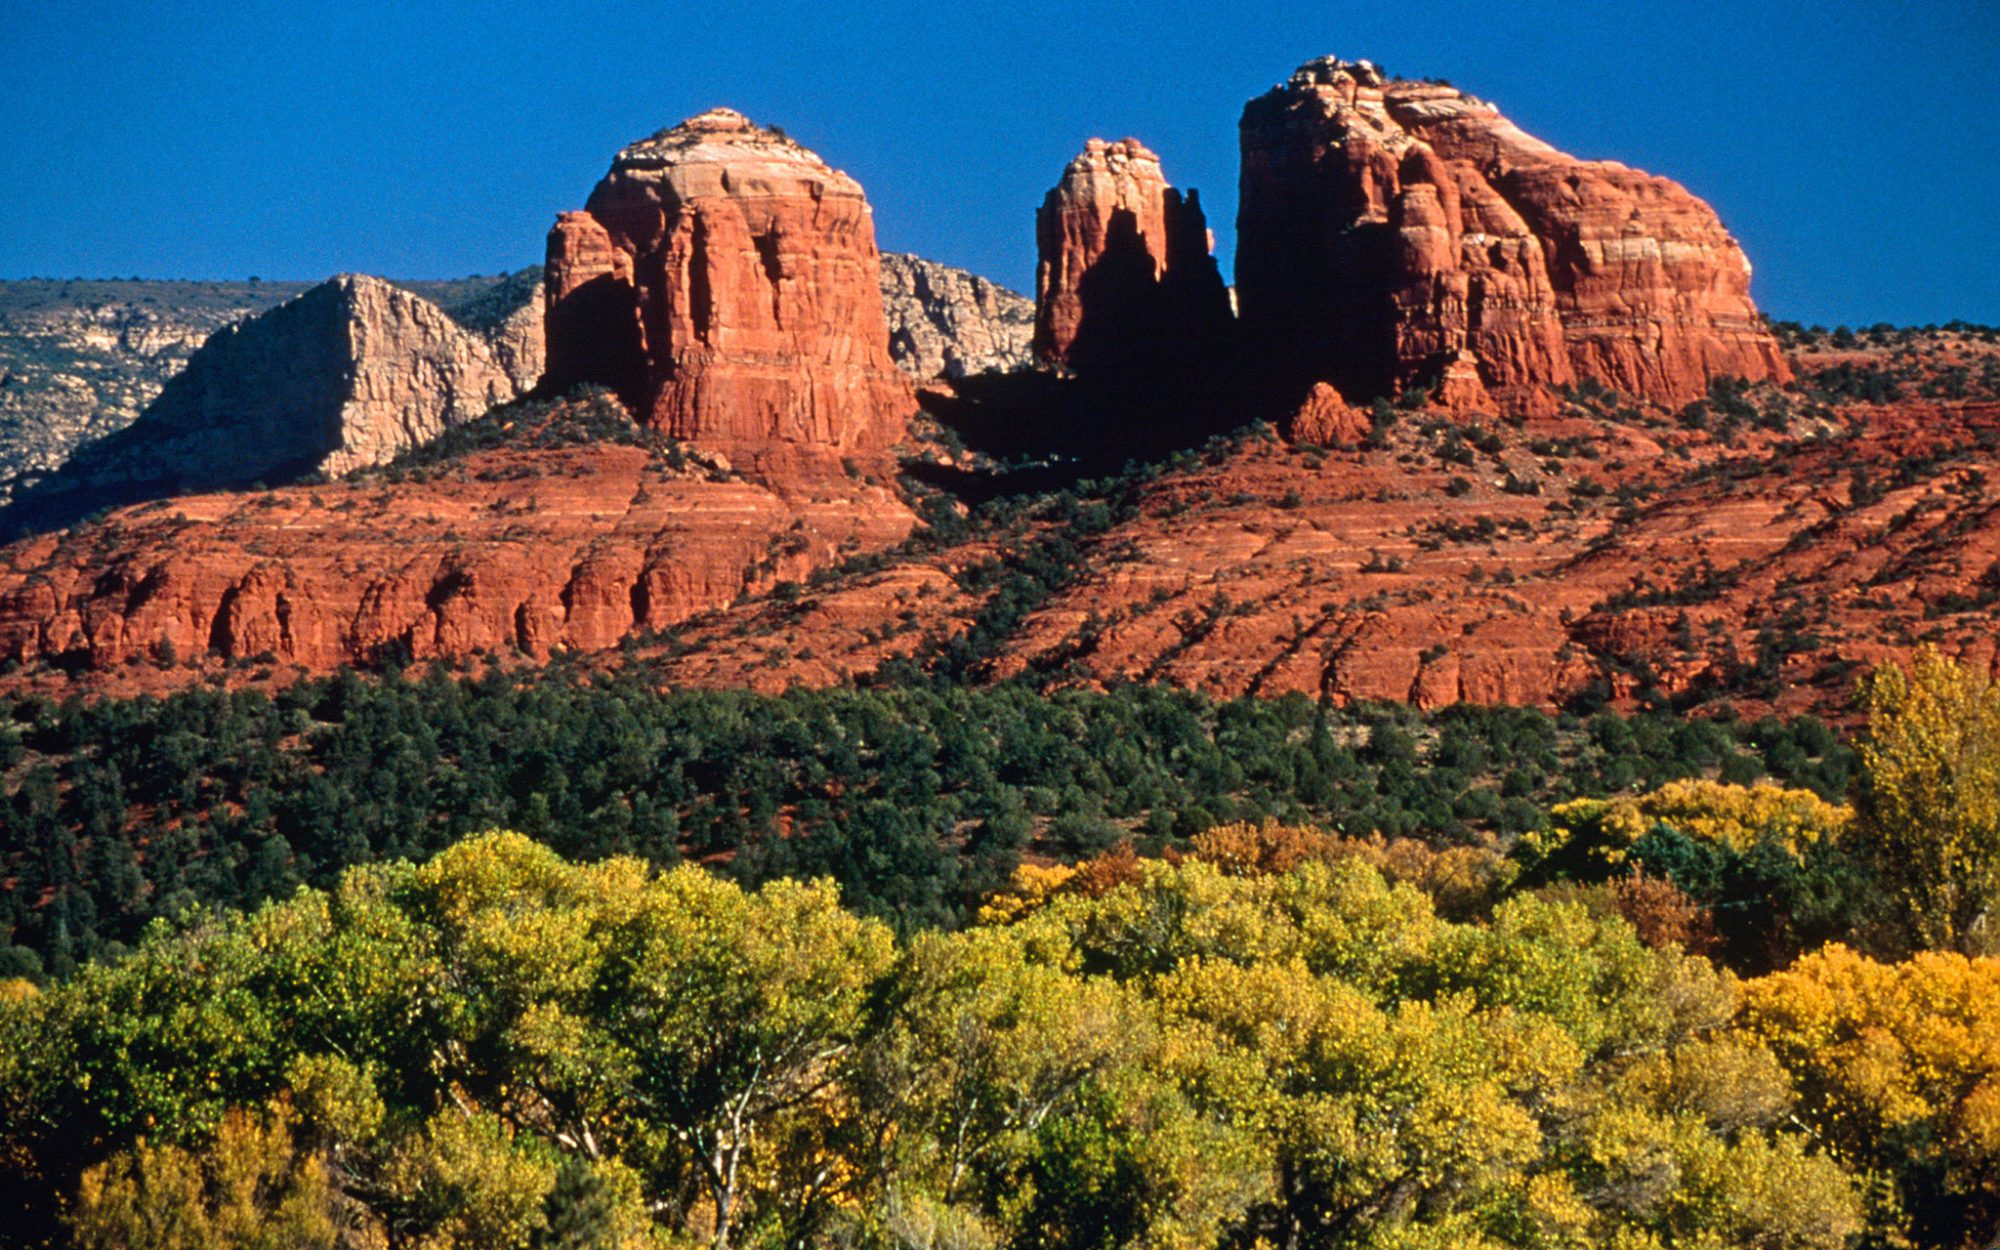 201408-w-towns-fall-colors-sedona-arizona